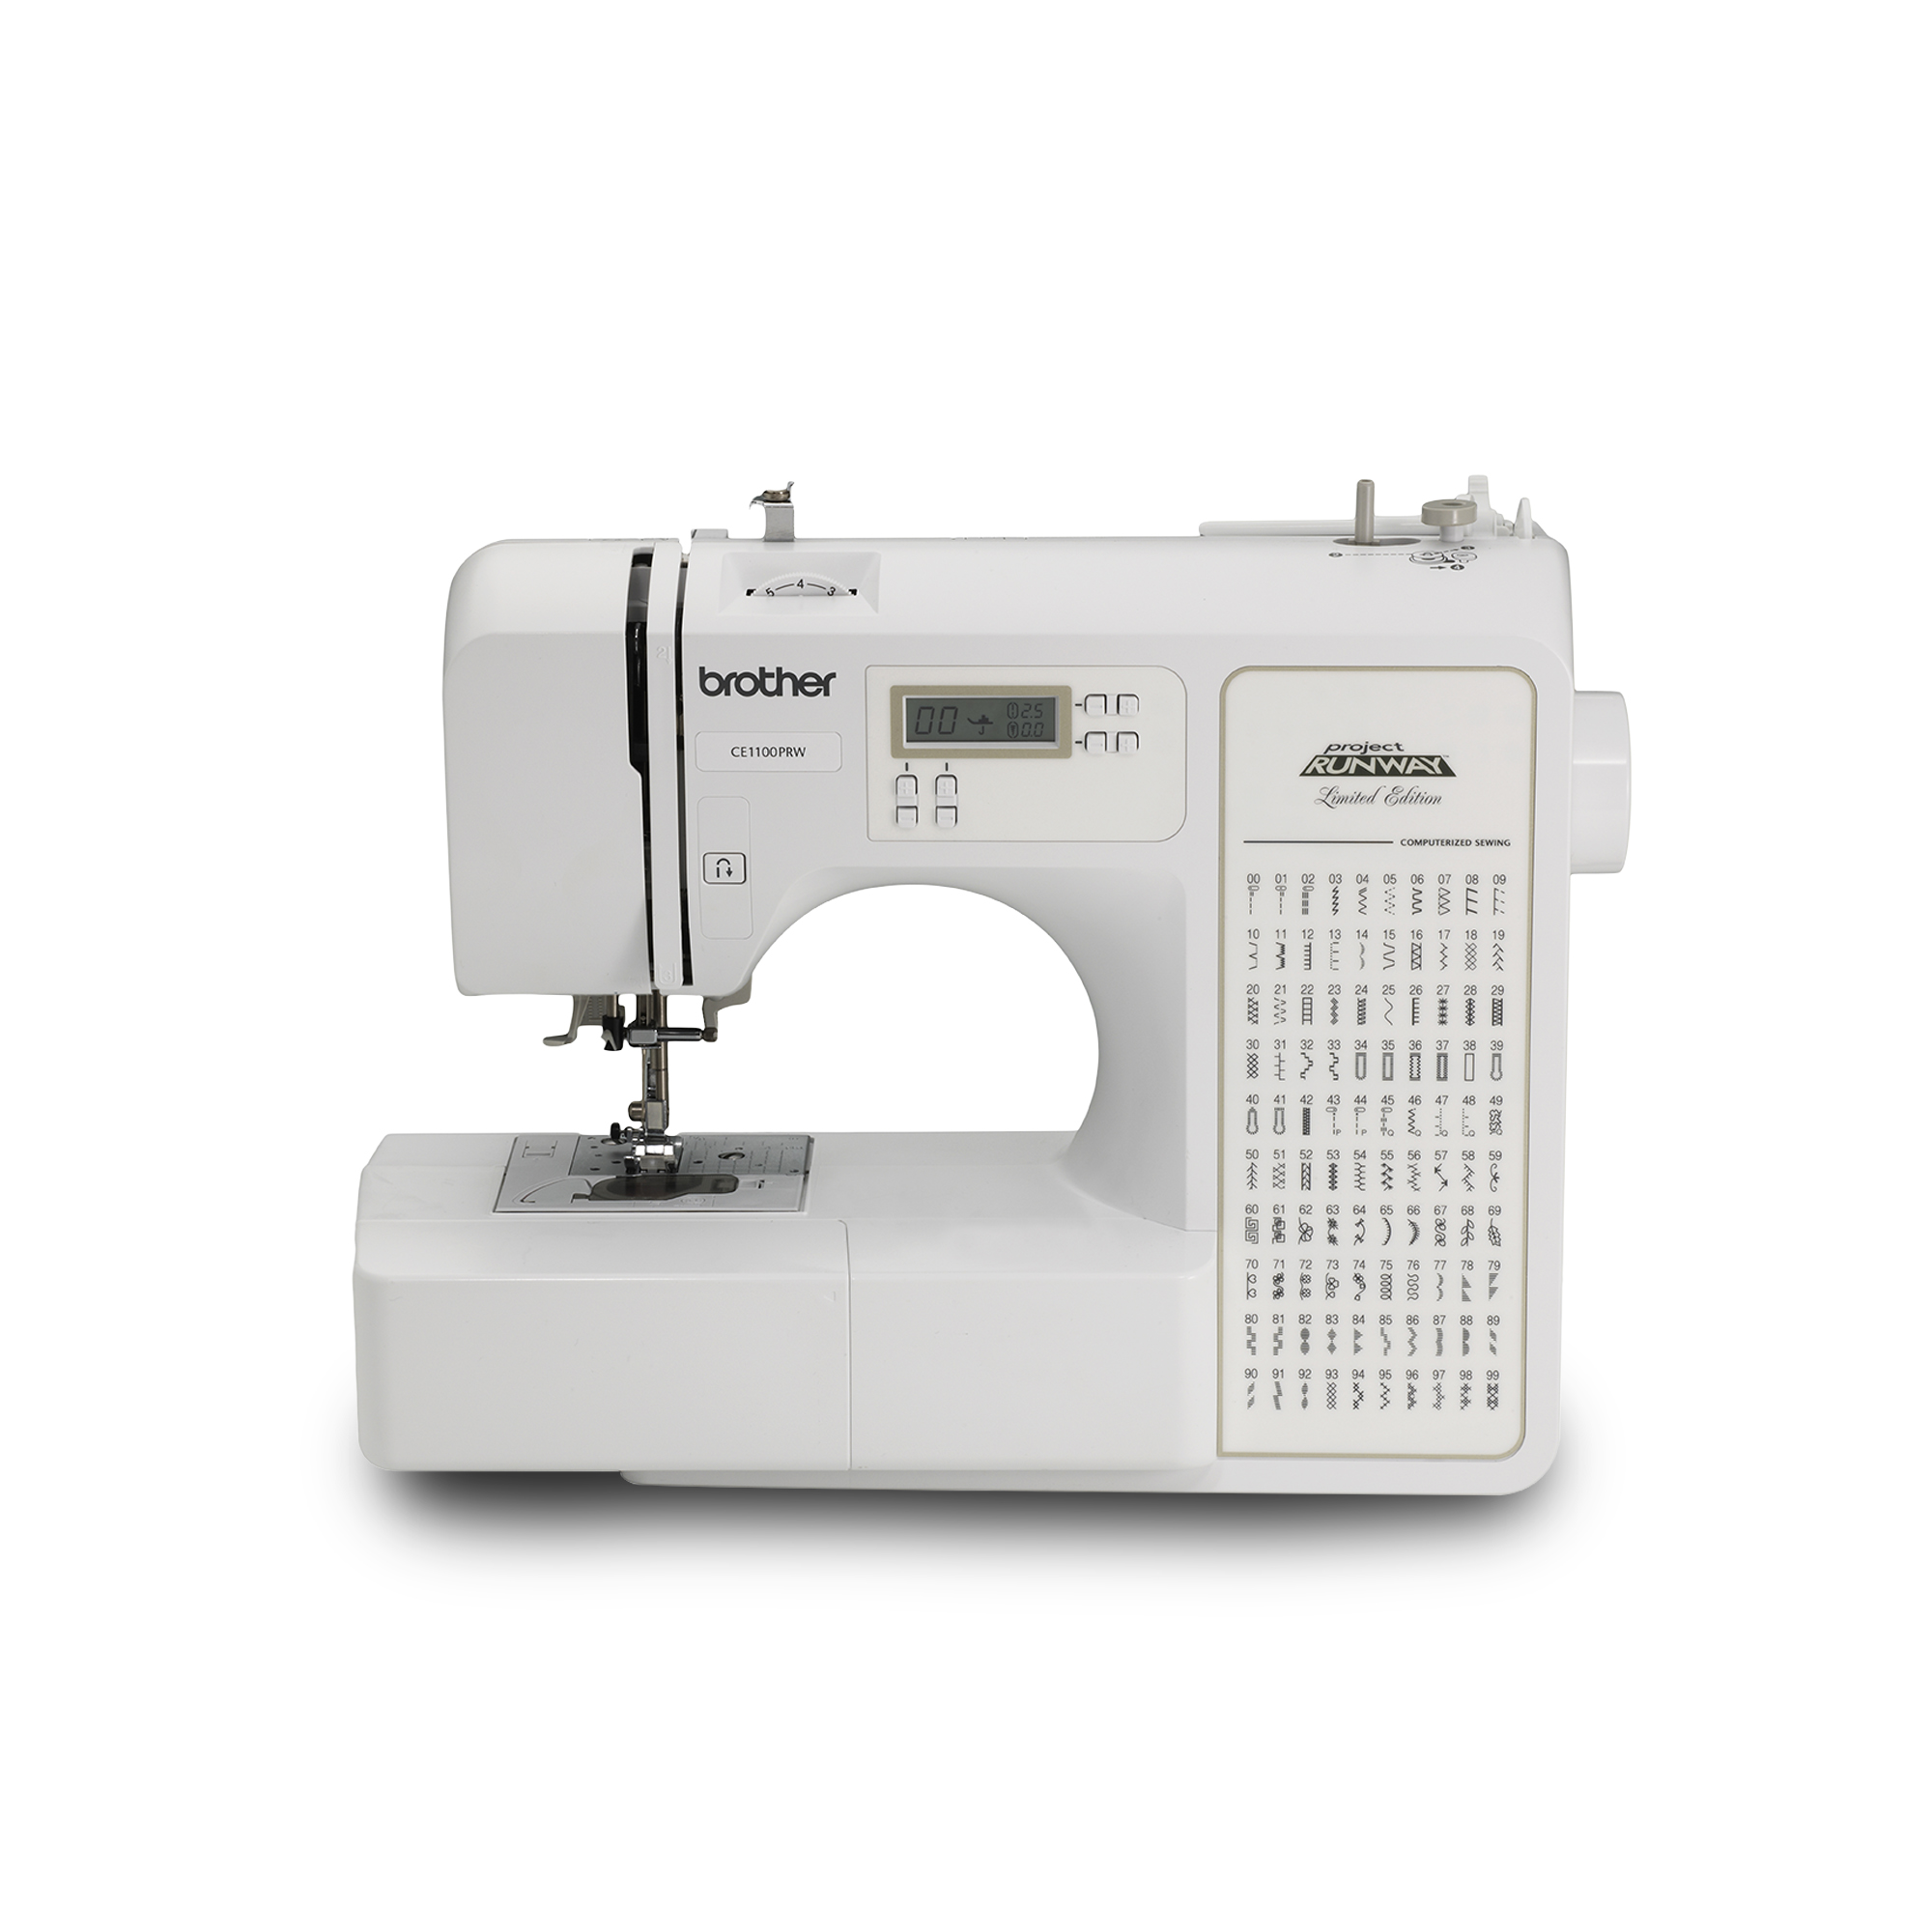 Brother Computerized 100-Stitch Project Runway Sewing Machine, CE1100PRW